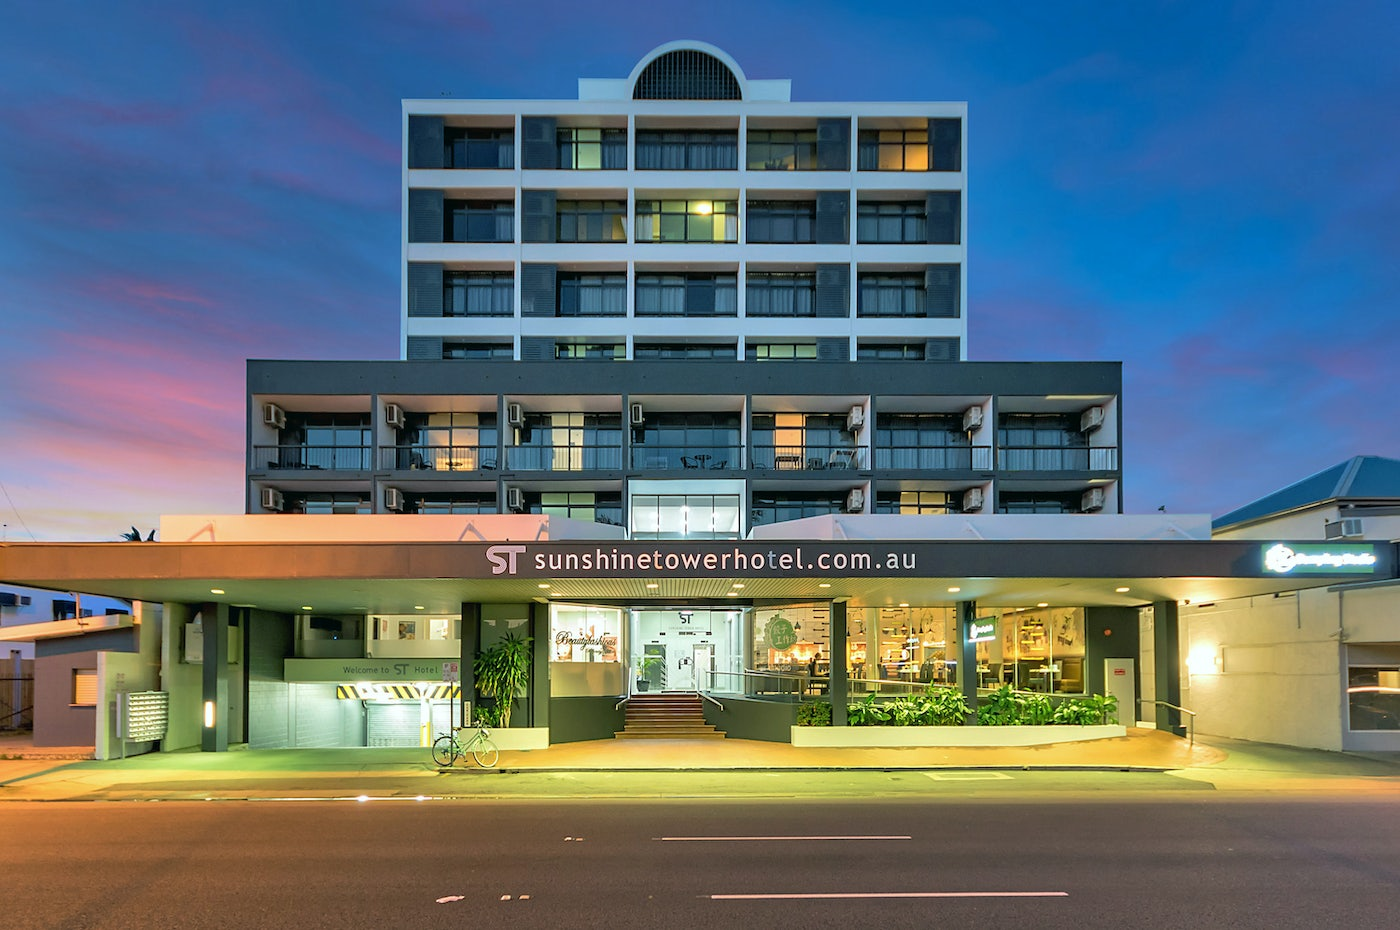 Enterance to the cairns hotel The Sunshine Tower Hotel